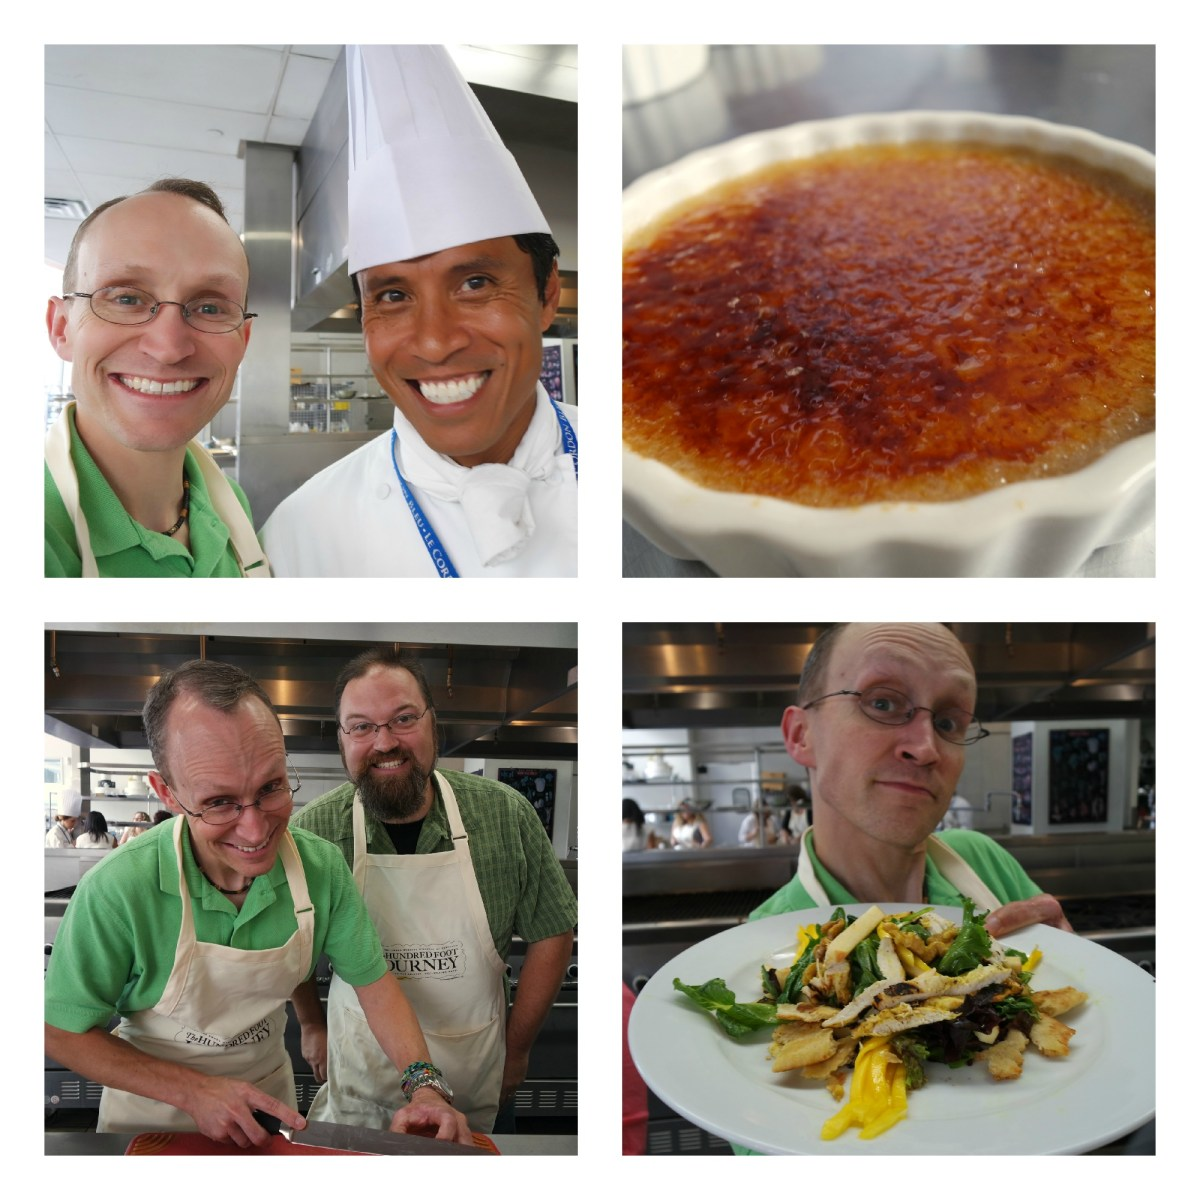 Cooking at Le Cordon Bleu - A Dream Come True! #100FootJourneyEvent